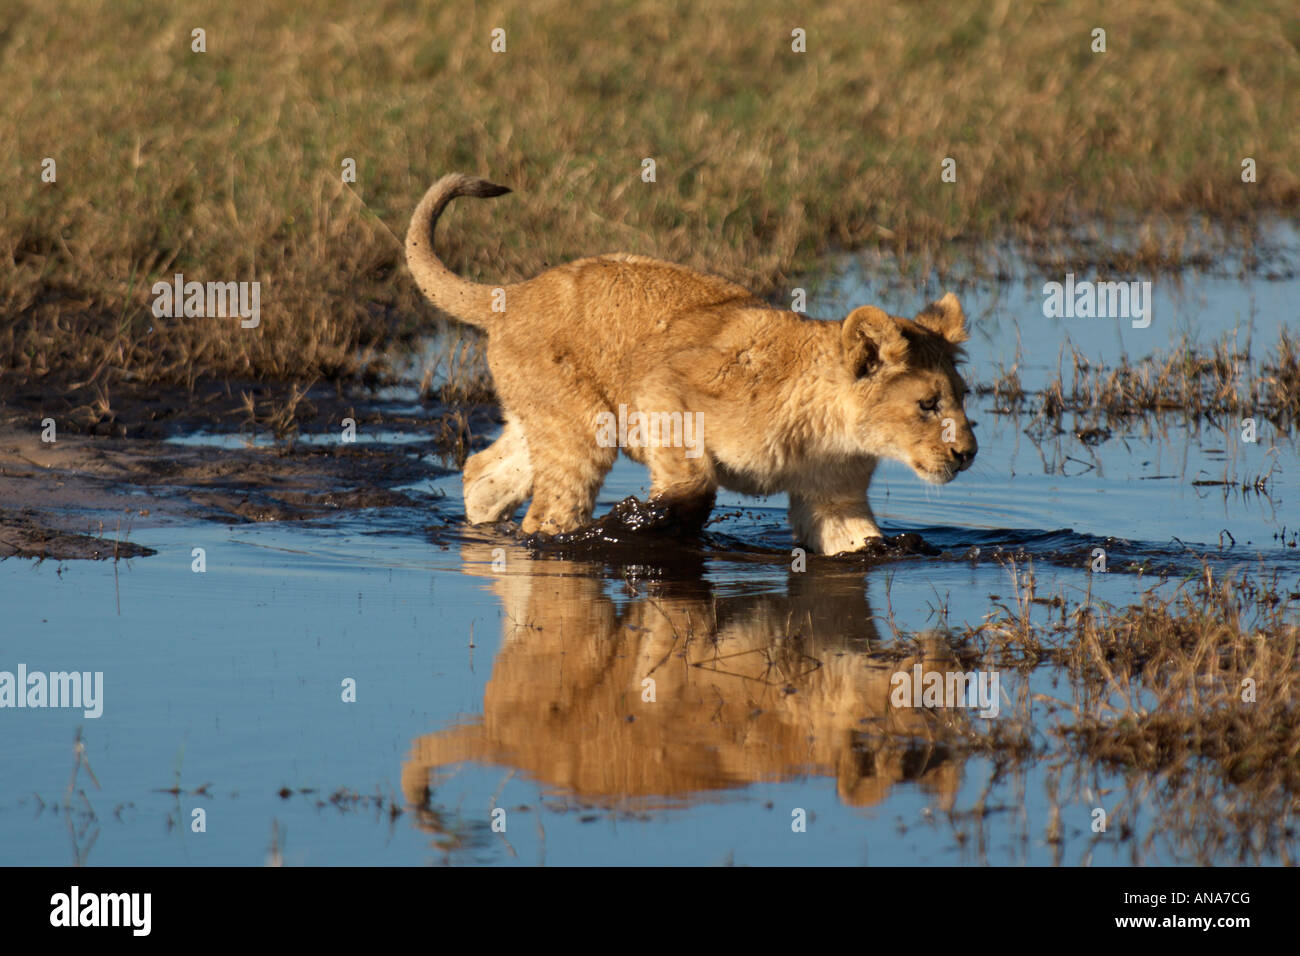 Lion cub walking tentatively into shallow water to cross a small stream - Stock Image